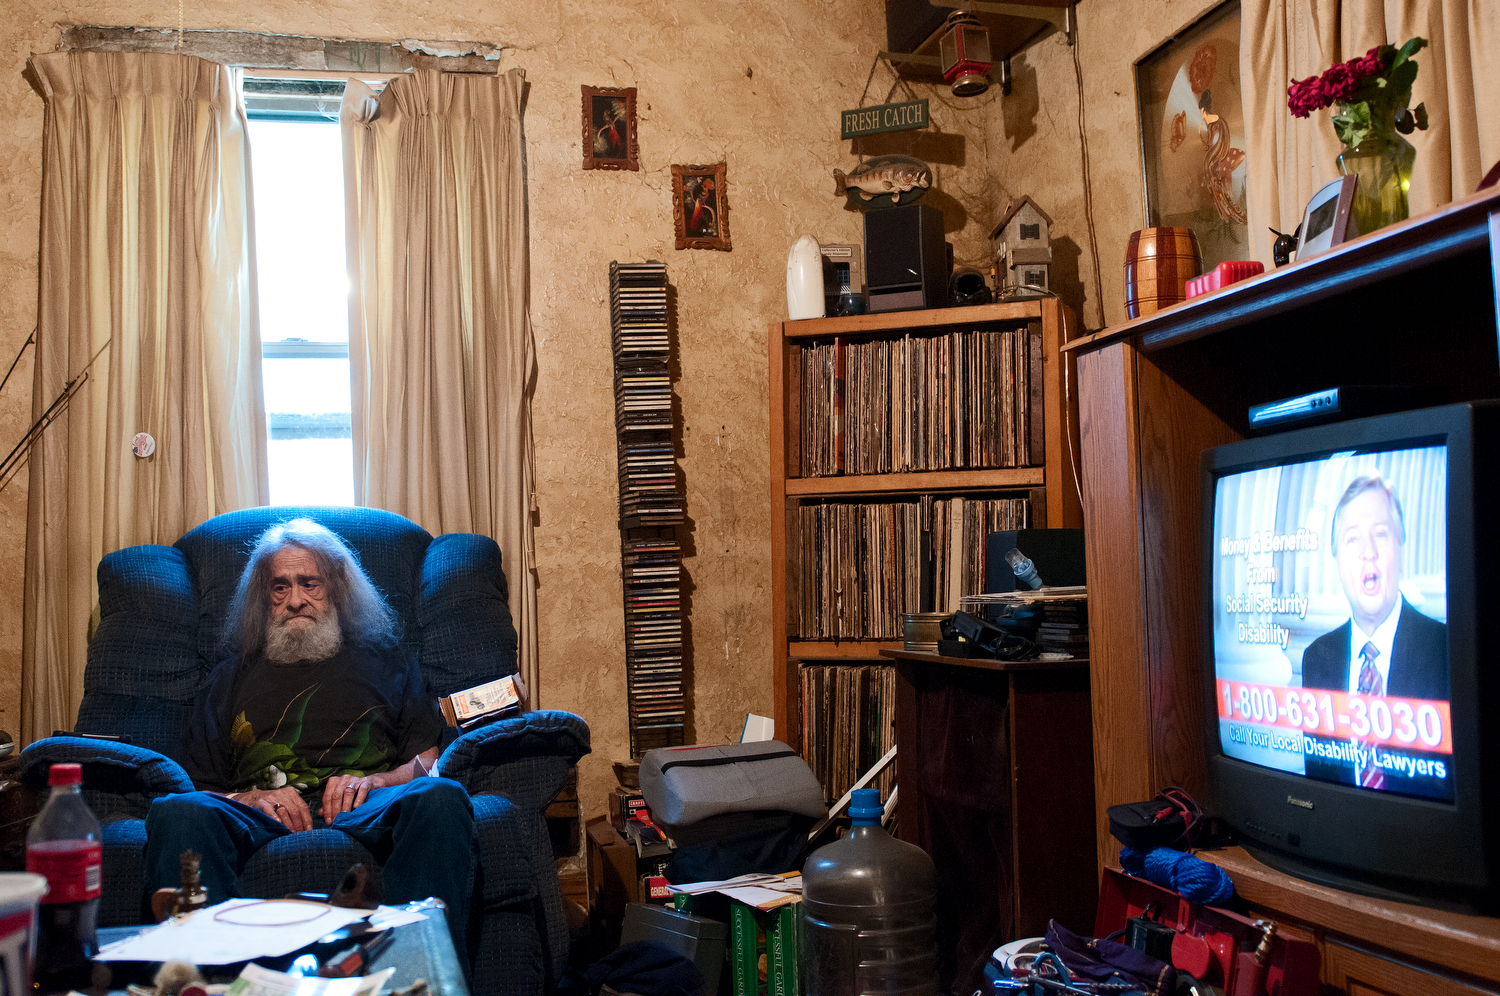 United States, Missouri, Kansas City. Former GST Steel worker Vernon Corliss sits in his Kansas City home. Corliss is a former worker at GST Steel, a manufacturing plant closed by Mitt Romney's venture capital firm Bain Capital. He did not lose his job when the plant closed, however when GST Steel declared bankruptcy it could no longer fully pay his pension and health care benefits. Corliss suffers from asbestosis poisoning, he once weighed 270 pounds, however because of his poor health he now weighs 139 pounds.